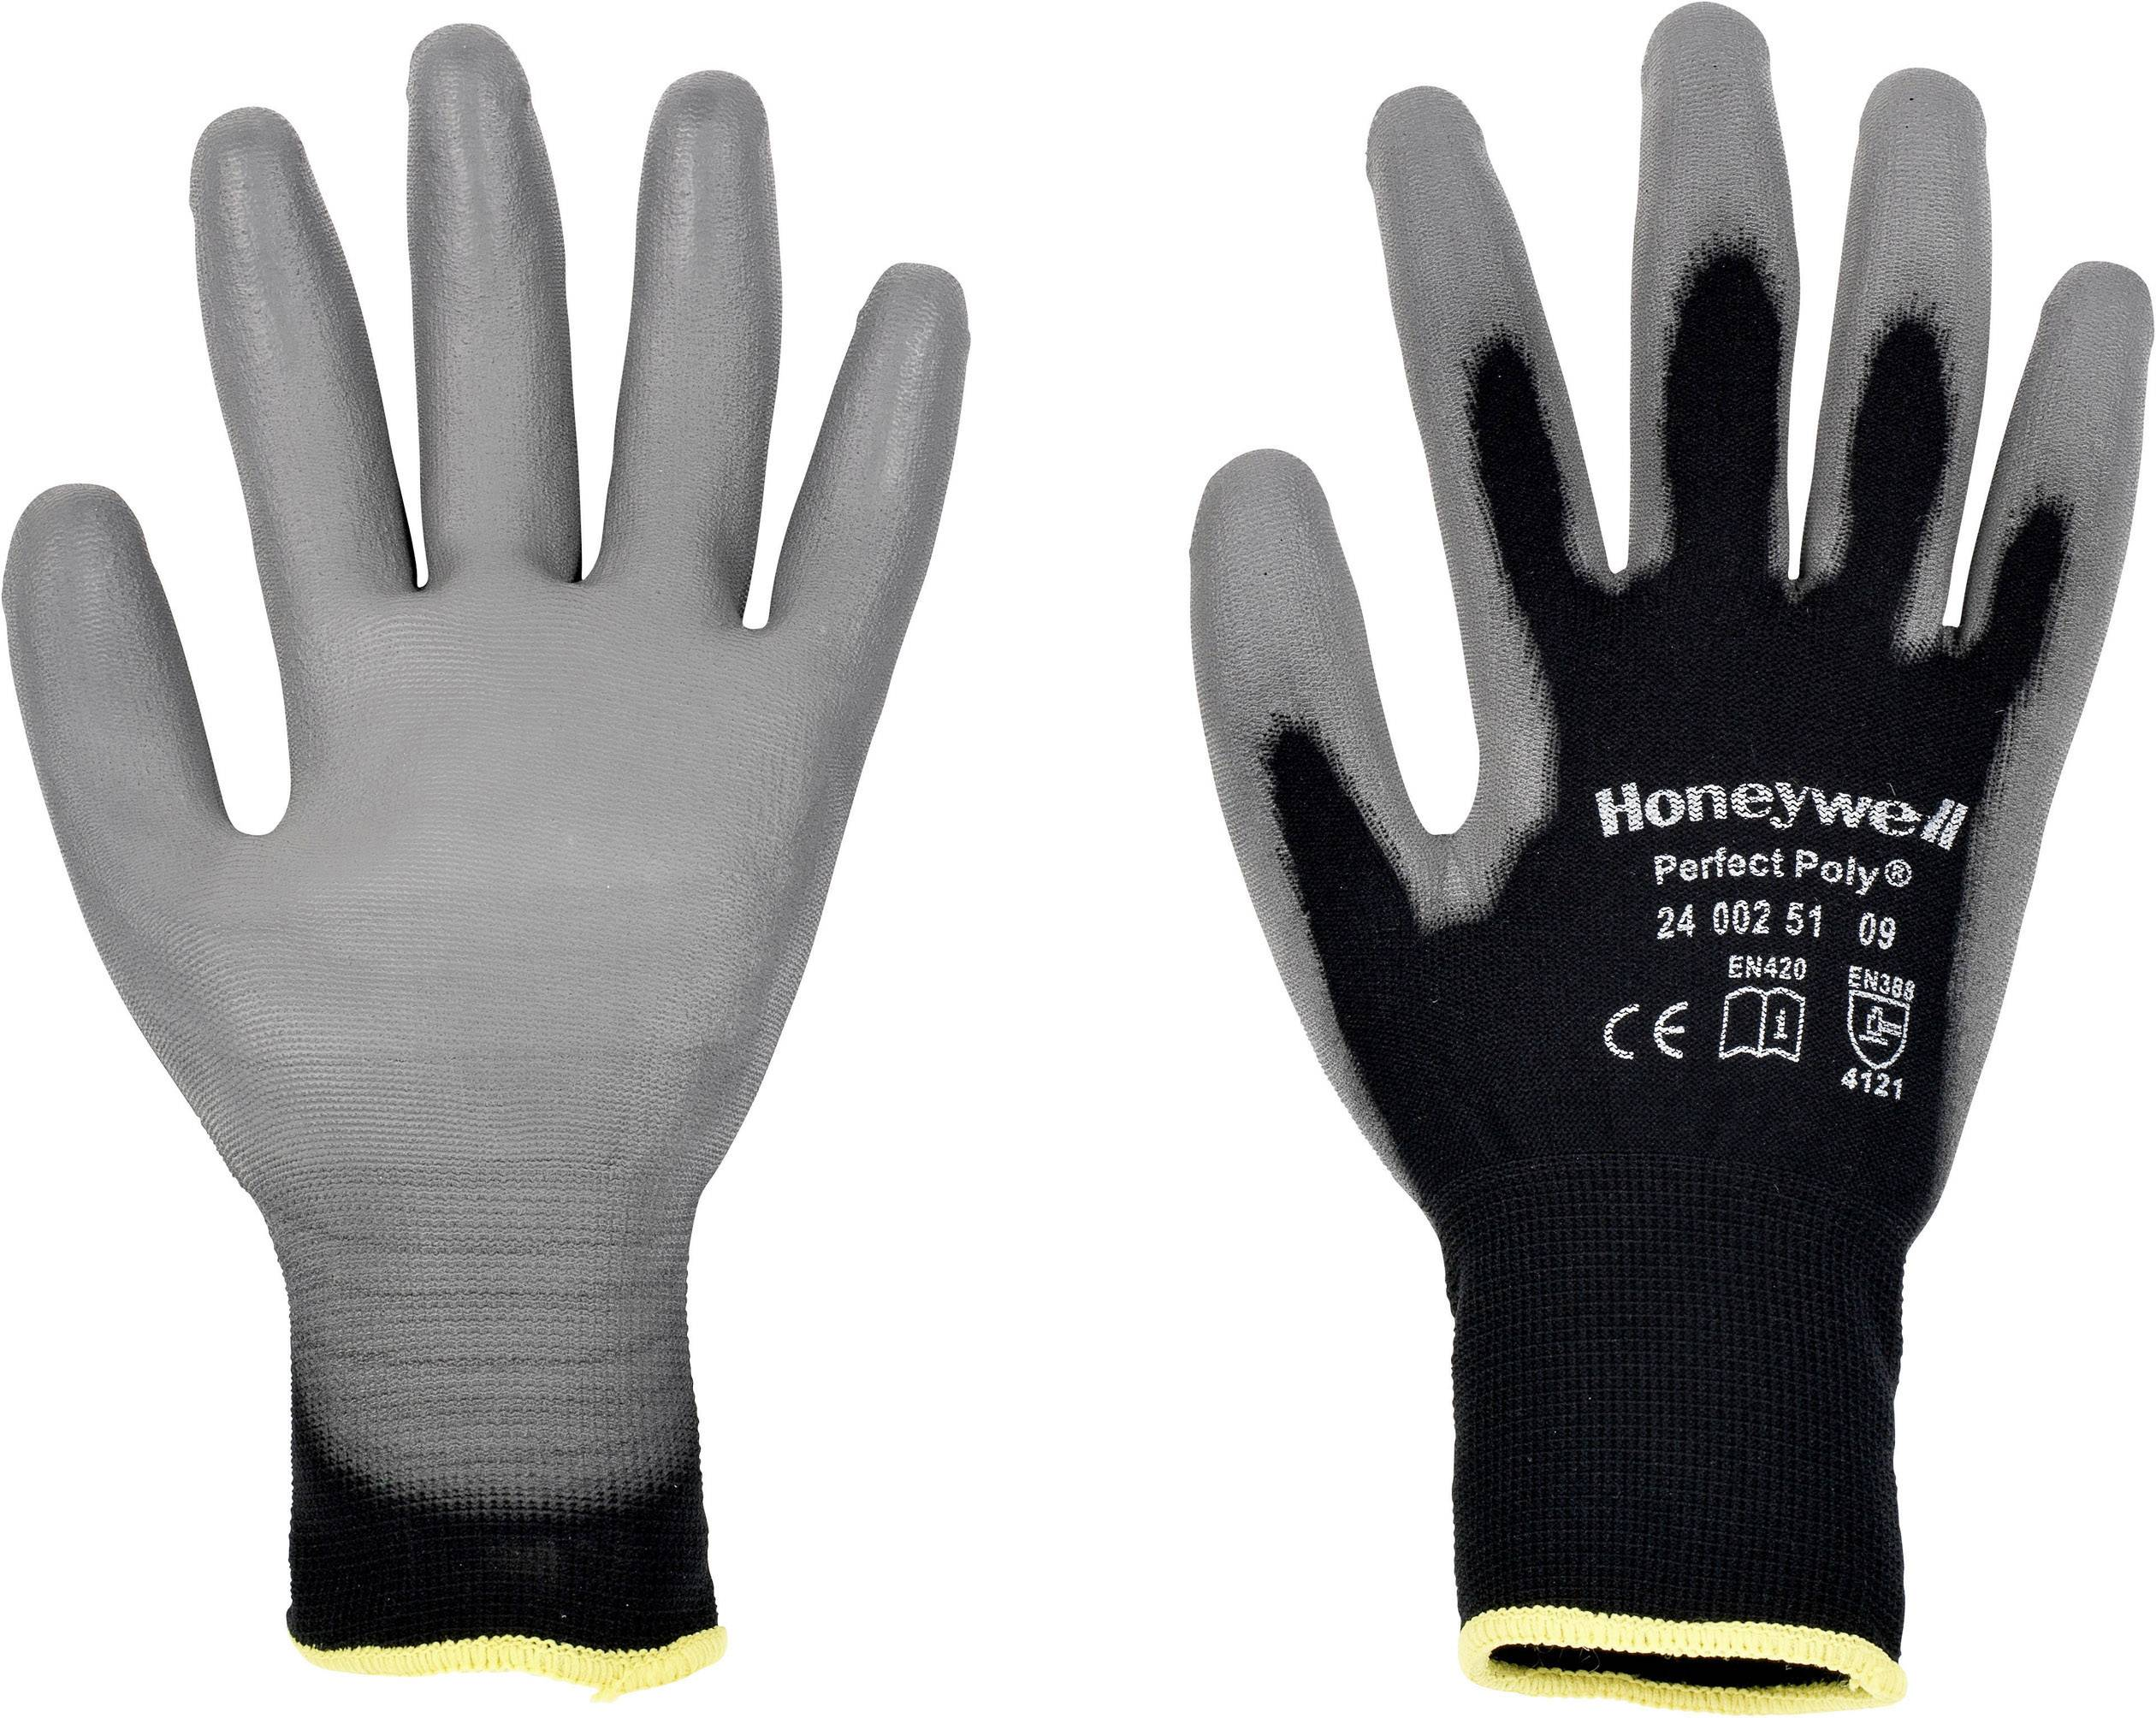 Pracovné rukavice Perfect Fit GANTS NOIRS PERFECTPOLY 2400251, velikost rukavic: 6, XS